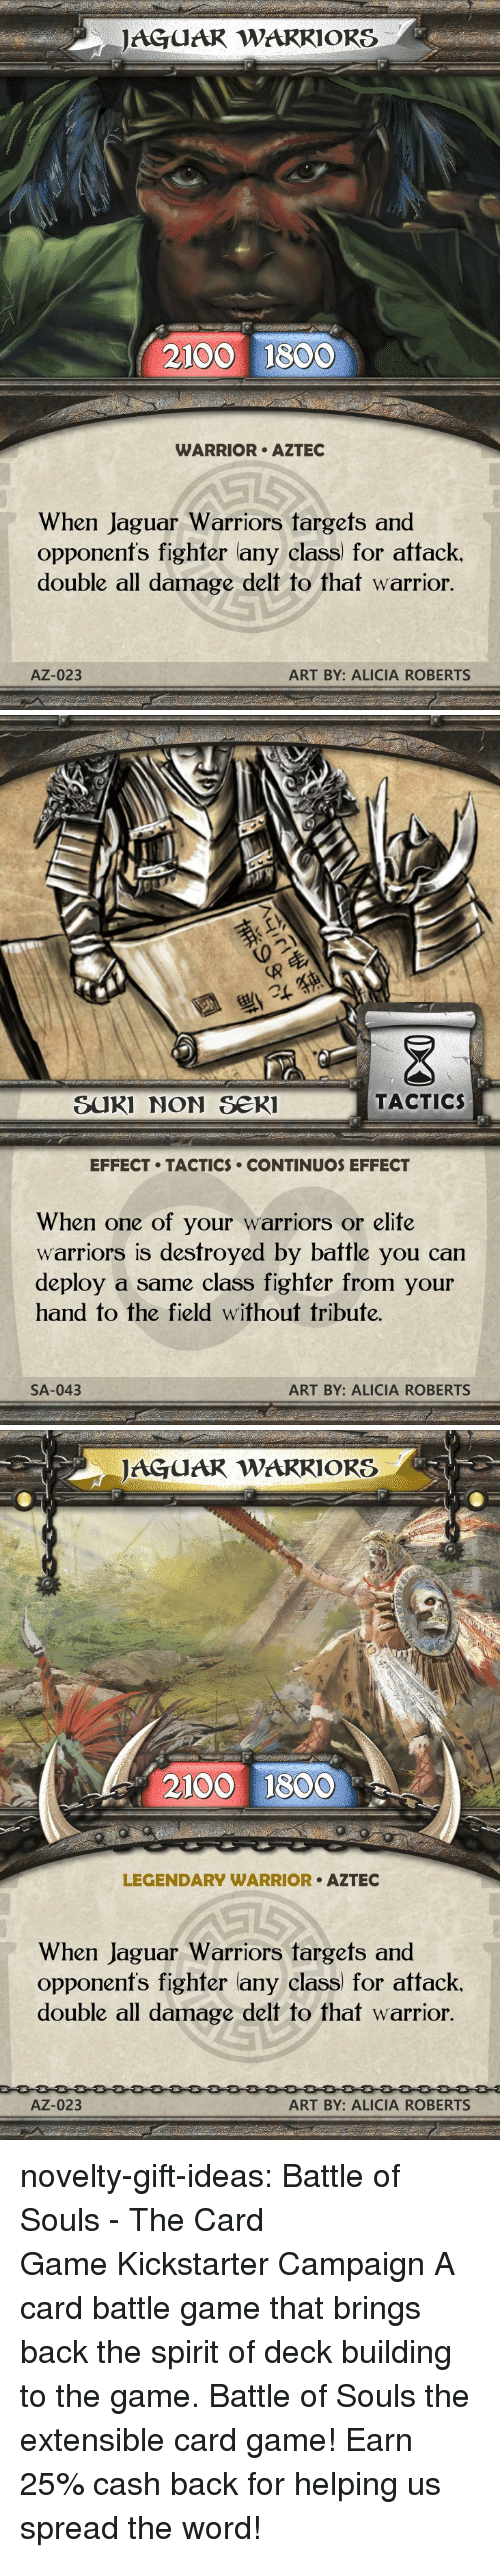 The Game, Tumblr, and Blog: JAGUAR WARRIORS  2100 1800  WARRIOR AZTEC  When Jaguar Warriors targets and  opponent's fighter any class) for attack  double all damage delt to that warrior.  AZ-023  ART BY: ALICIA ROBERTS   退  SUKI NON Se  TACTIC  EFFECT TACTICS CONTINUOS EFFECT  When one of your warriors or elite  warriors is destroyed by battle you can  deploy a same class fighfer from your  hand to the field without tribute.  SA-043  ART BY: ALICIA ROBERTS   JAGUAR WAKRIORS  2100 1800  LEGENDARY WARRIOR AZTEC  When Jaguar Warriors fargets and  opponenfs fighter lany class) for attack.  double all damage delt to that warrior  AZ-023  ART BY: ALICIA ROBERTS novelty-gift-ideas: Battle of Souls - The Card GameKickstarter Campaign A card battle game that brings back the spirit of deck building to the game. Battle of Souls the extensible card game!   Earn 25% cash back for helping us spread the word!